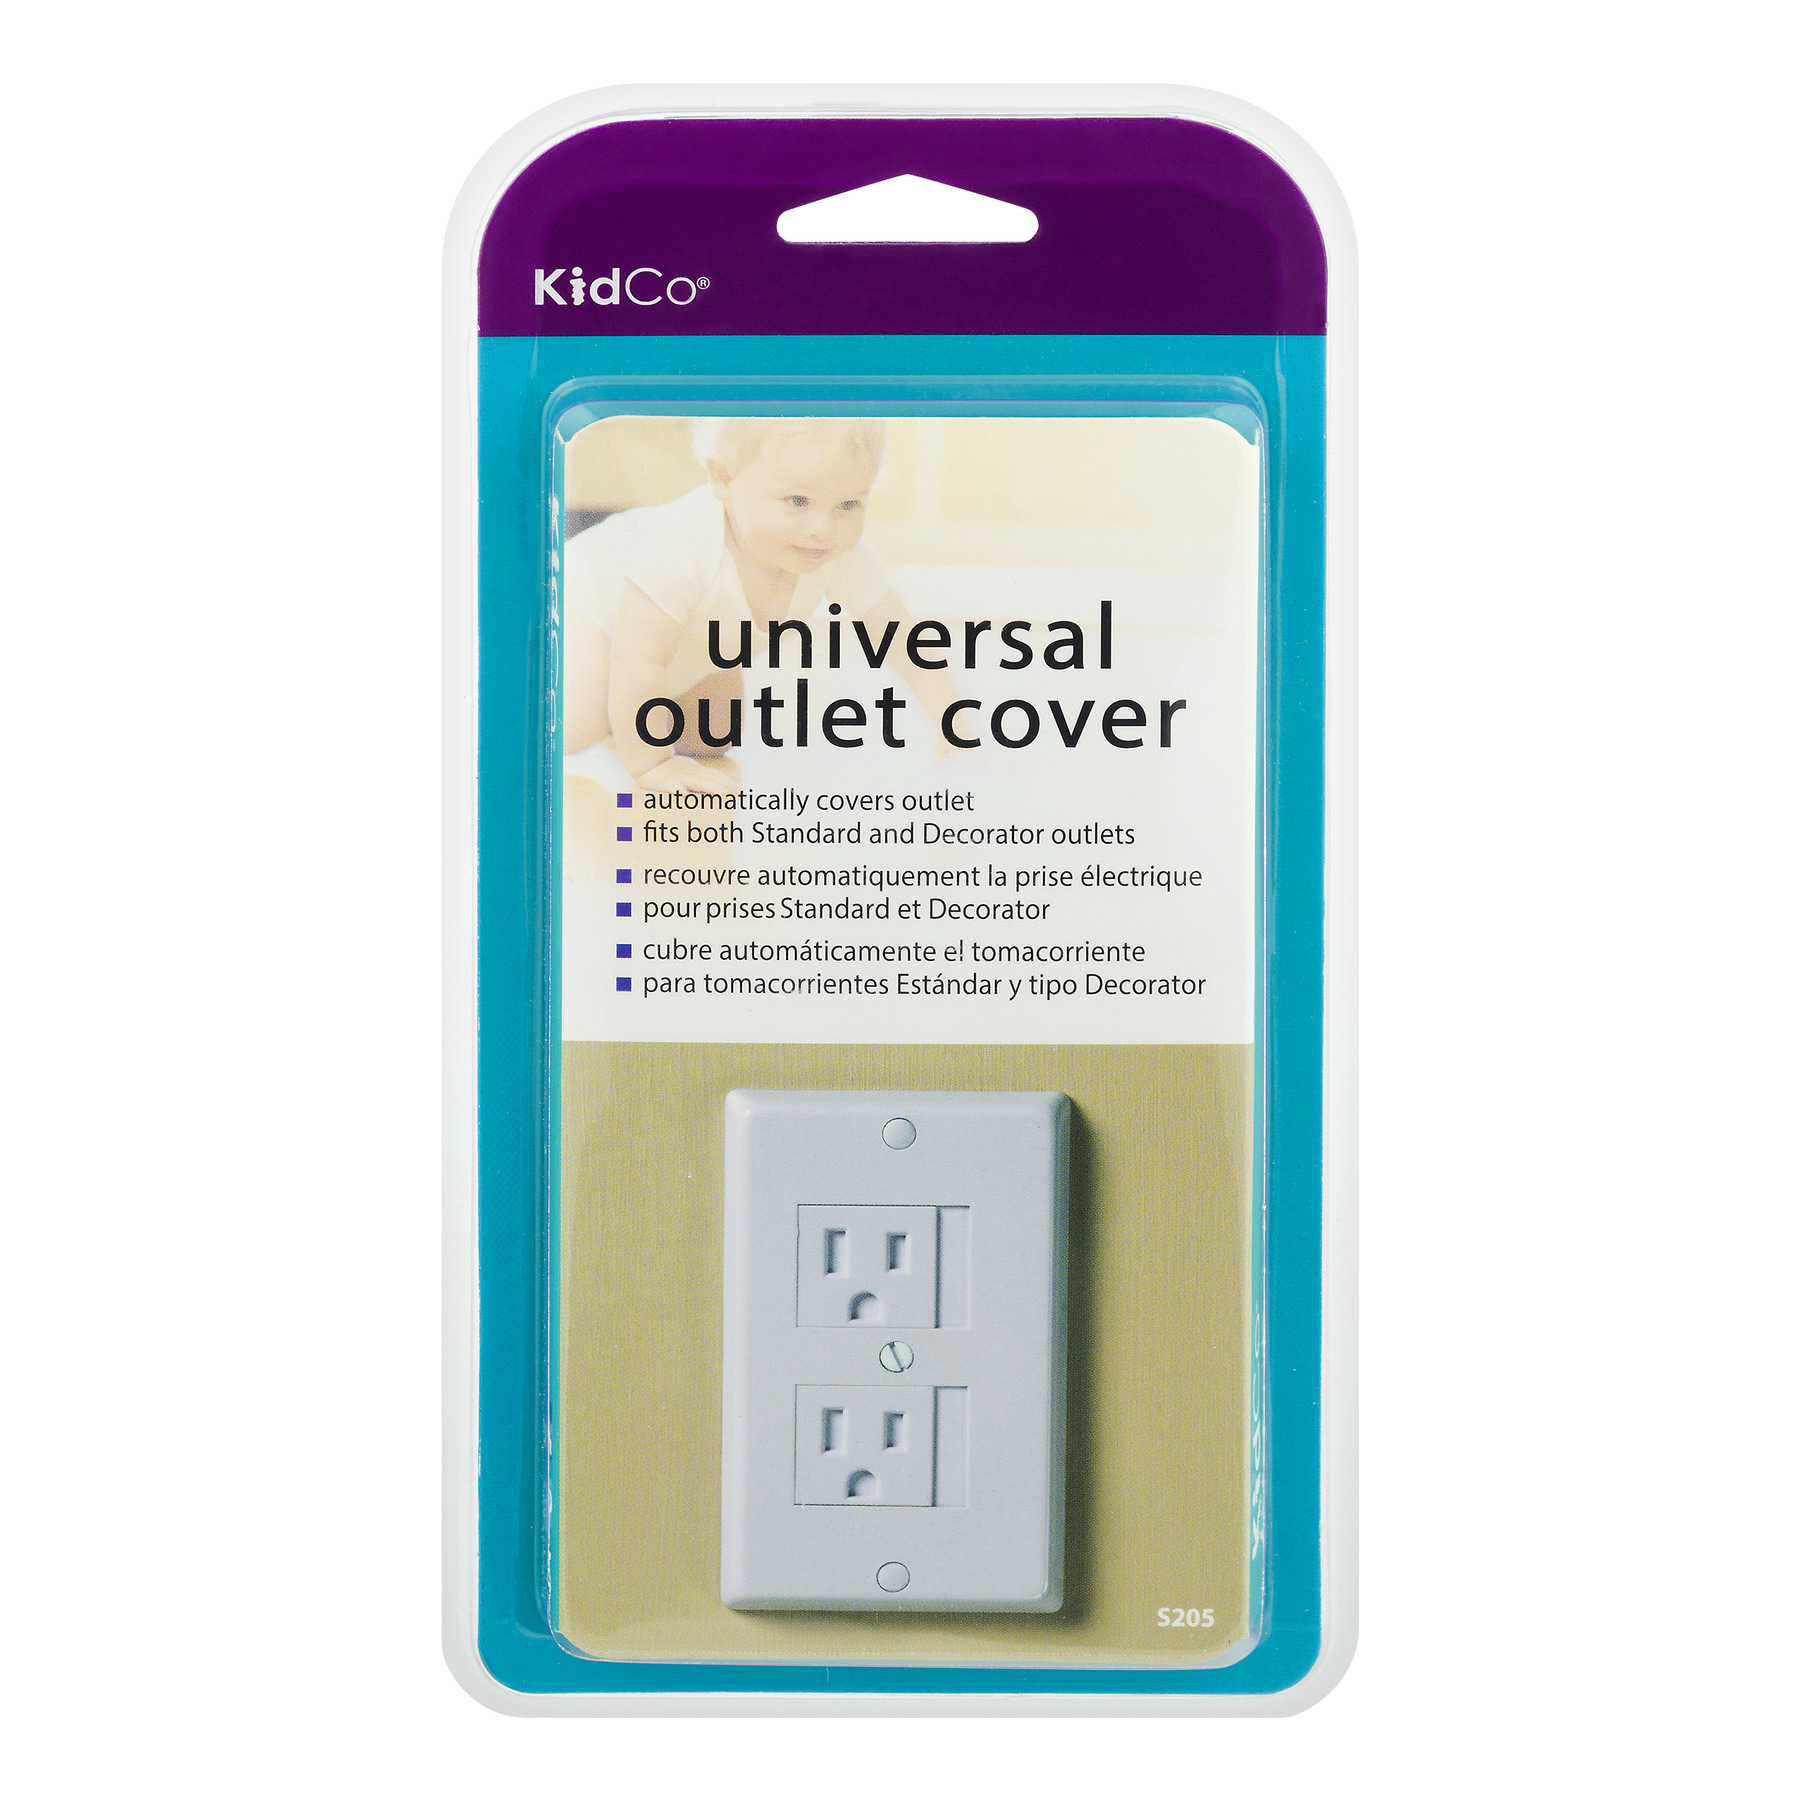 Kidco Universal Outlet Cover, 1.0 CT